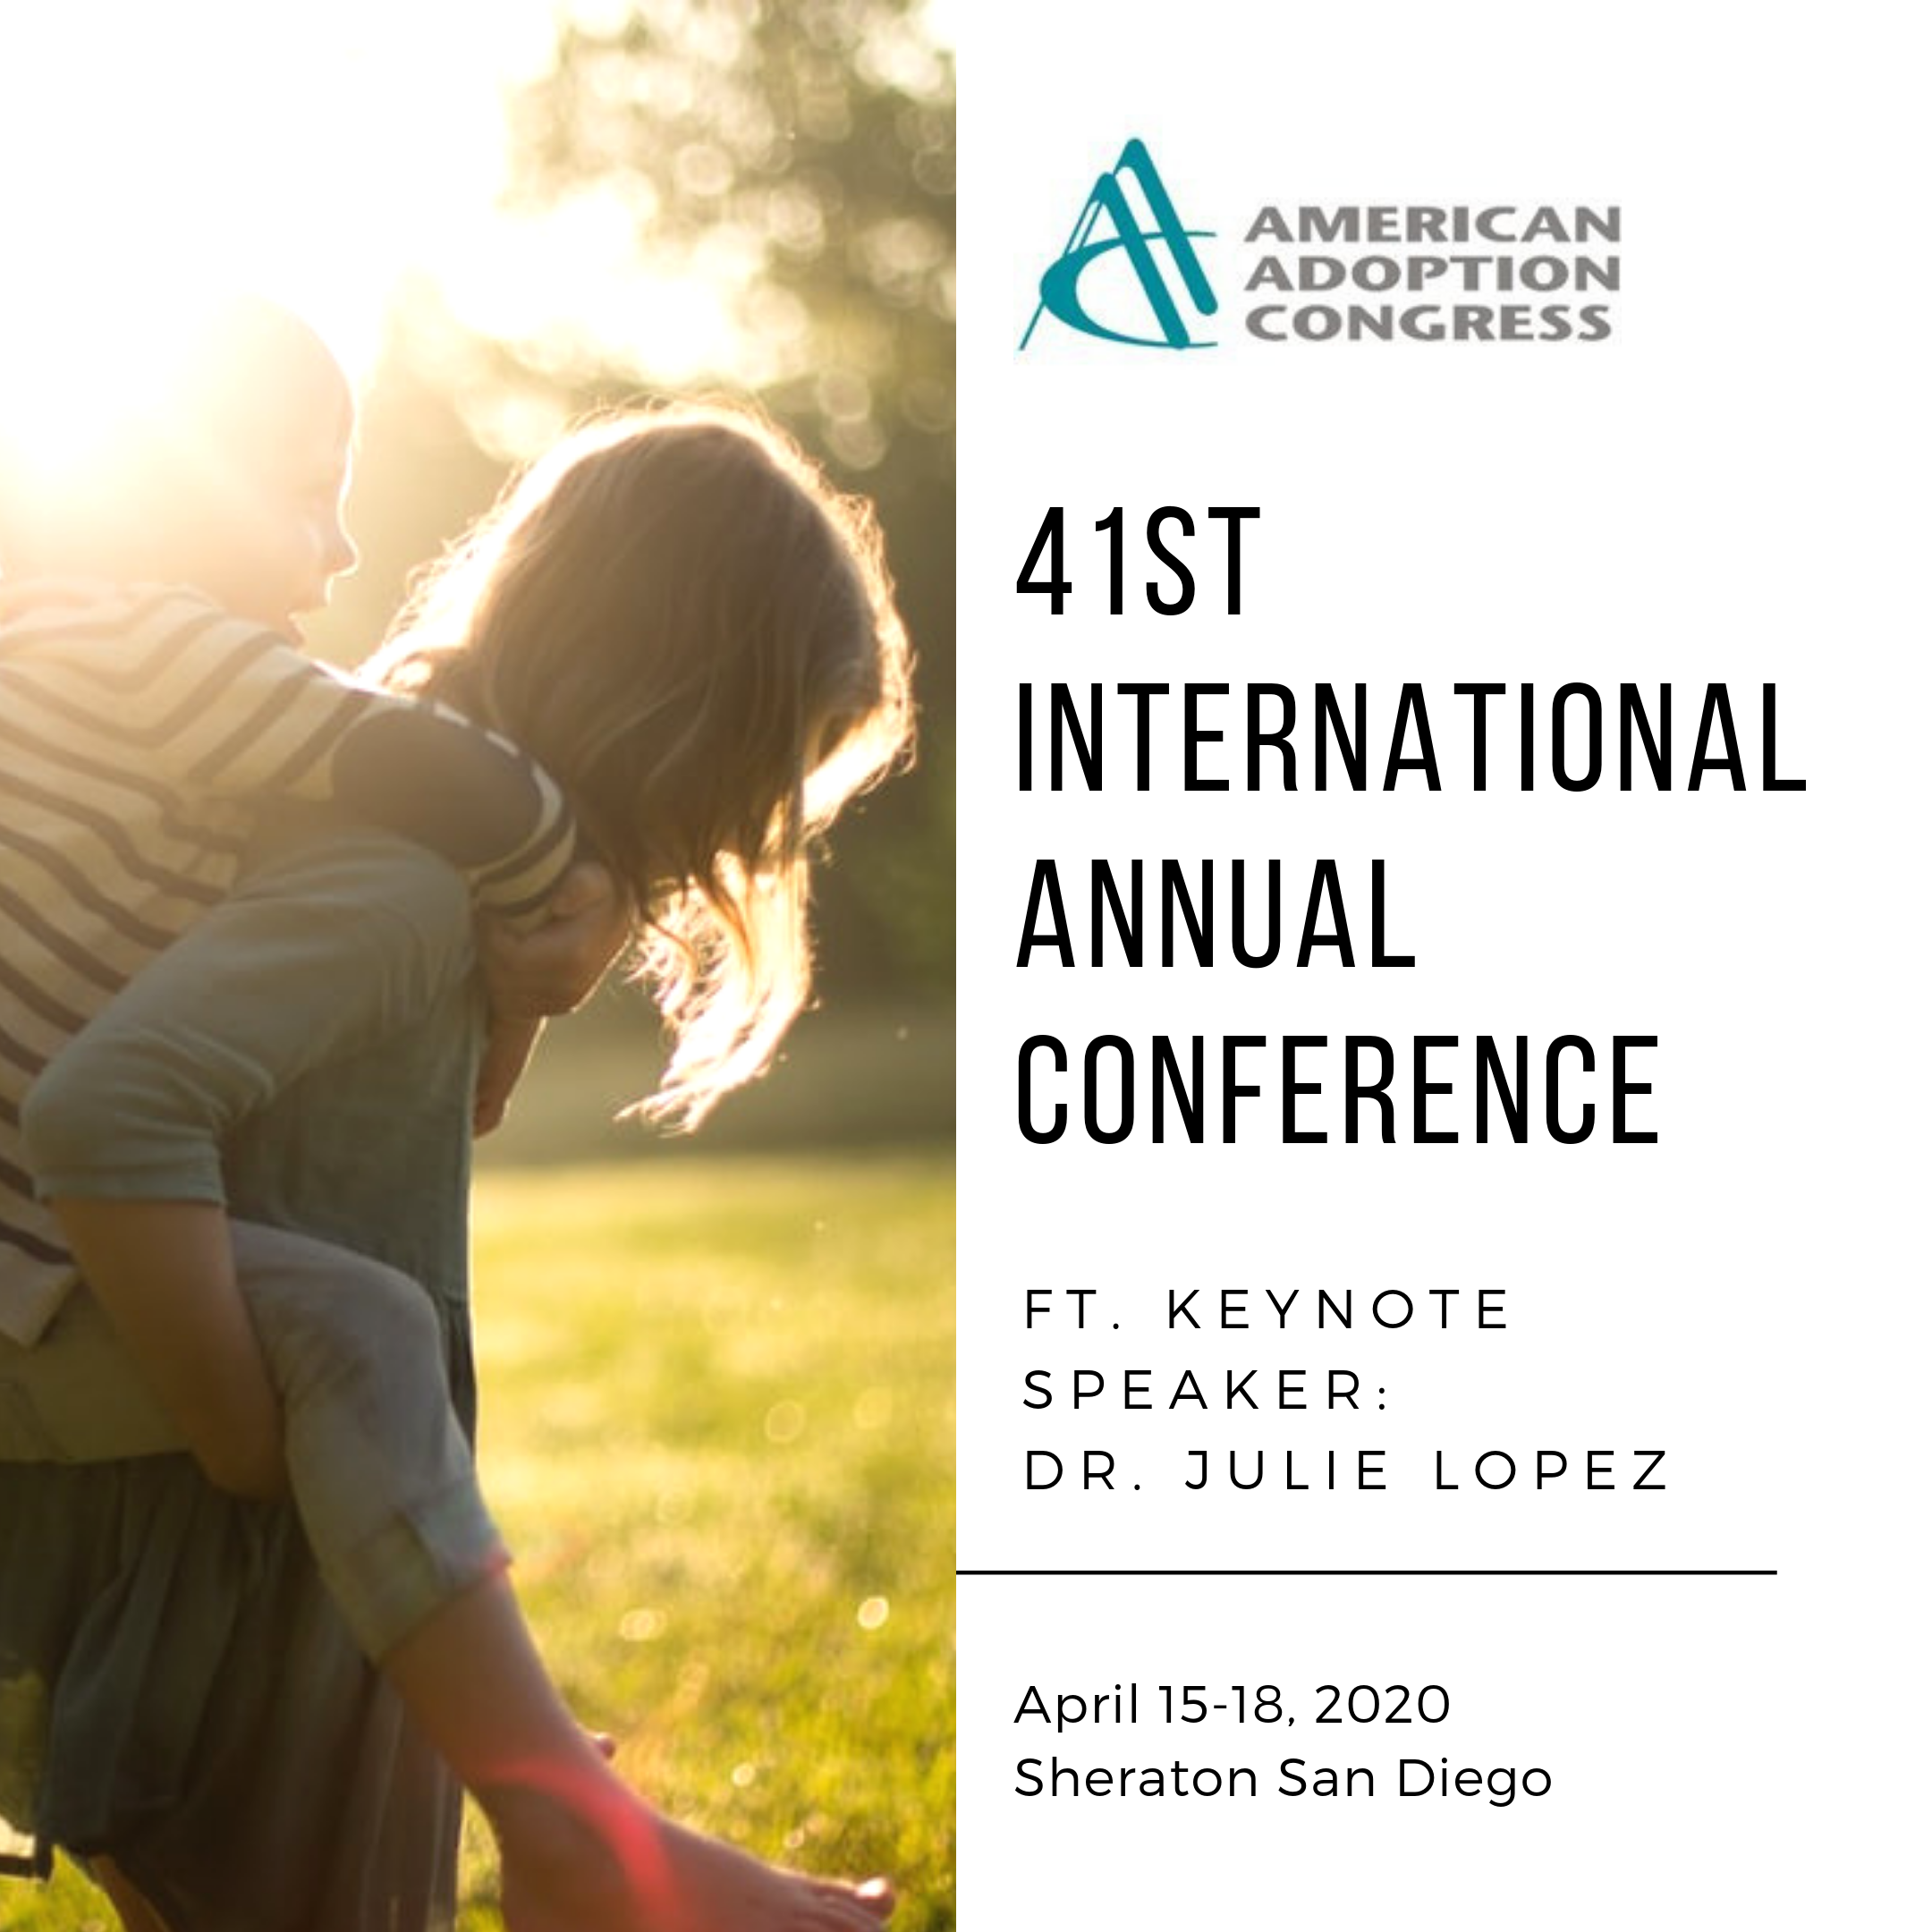 American Adoption Congress 41st Conference